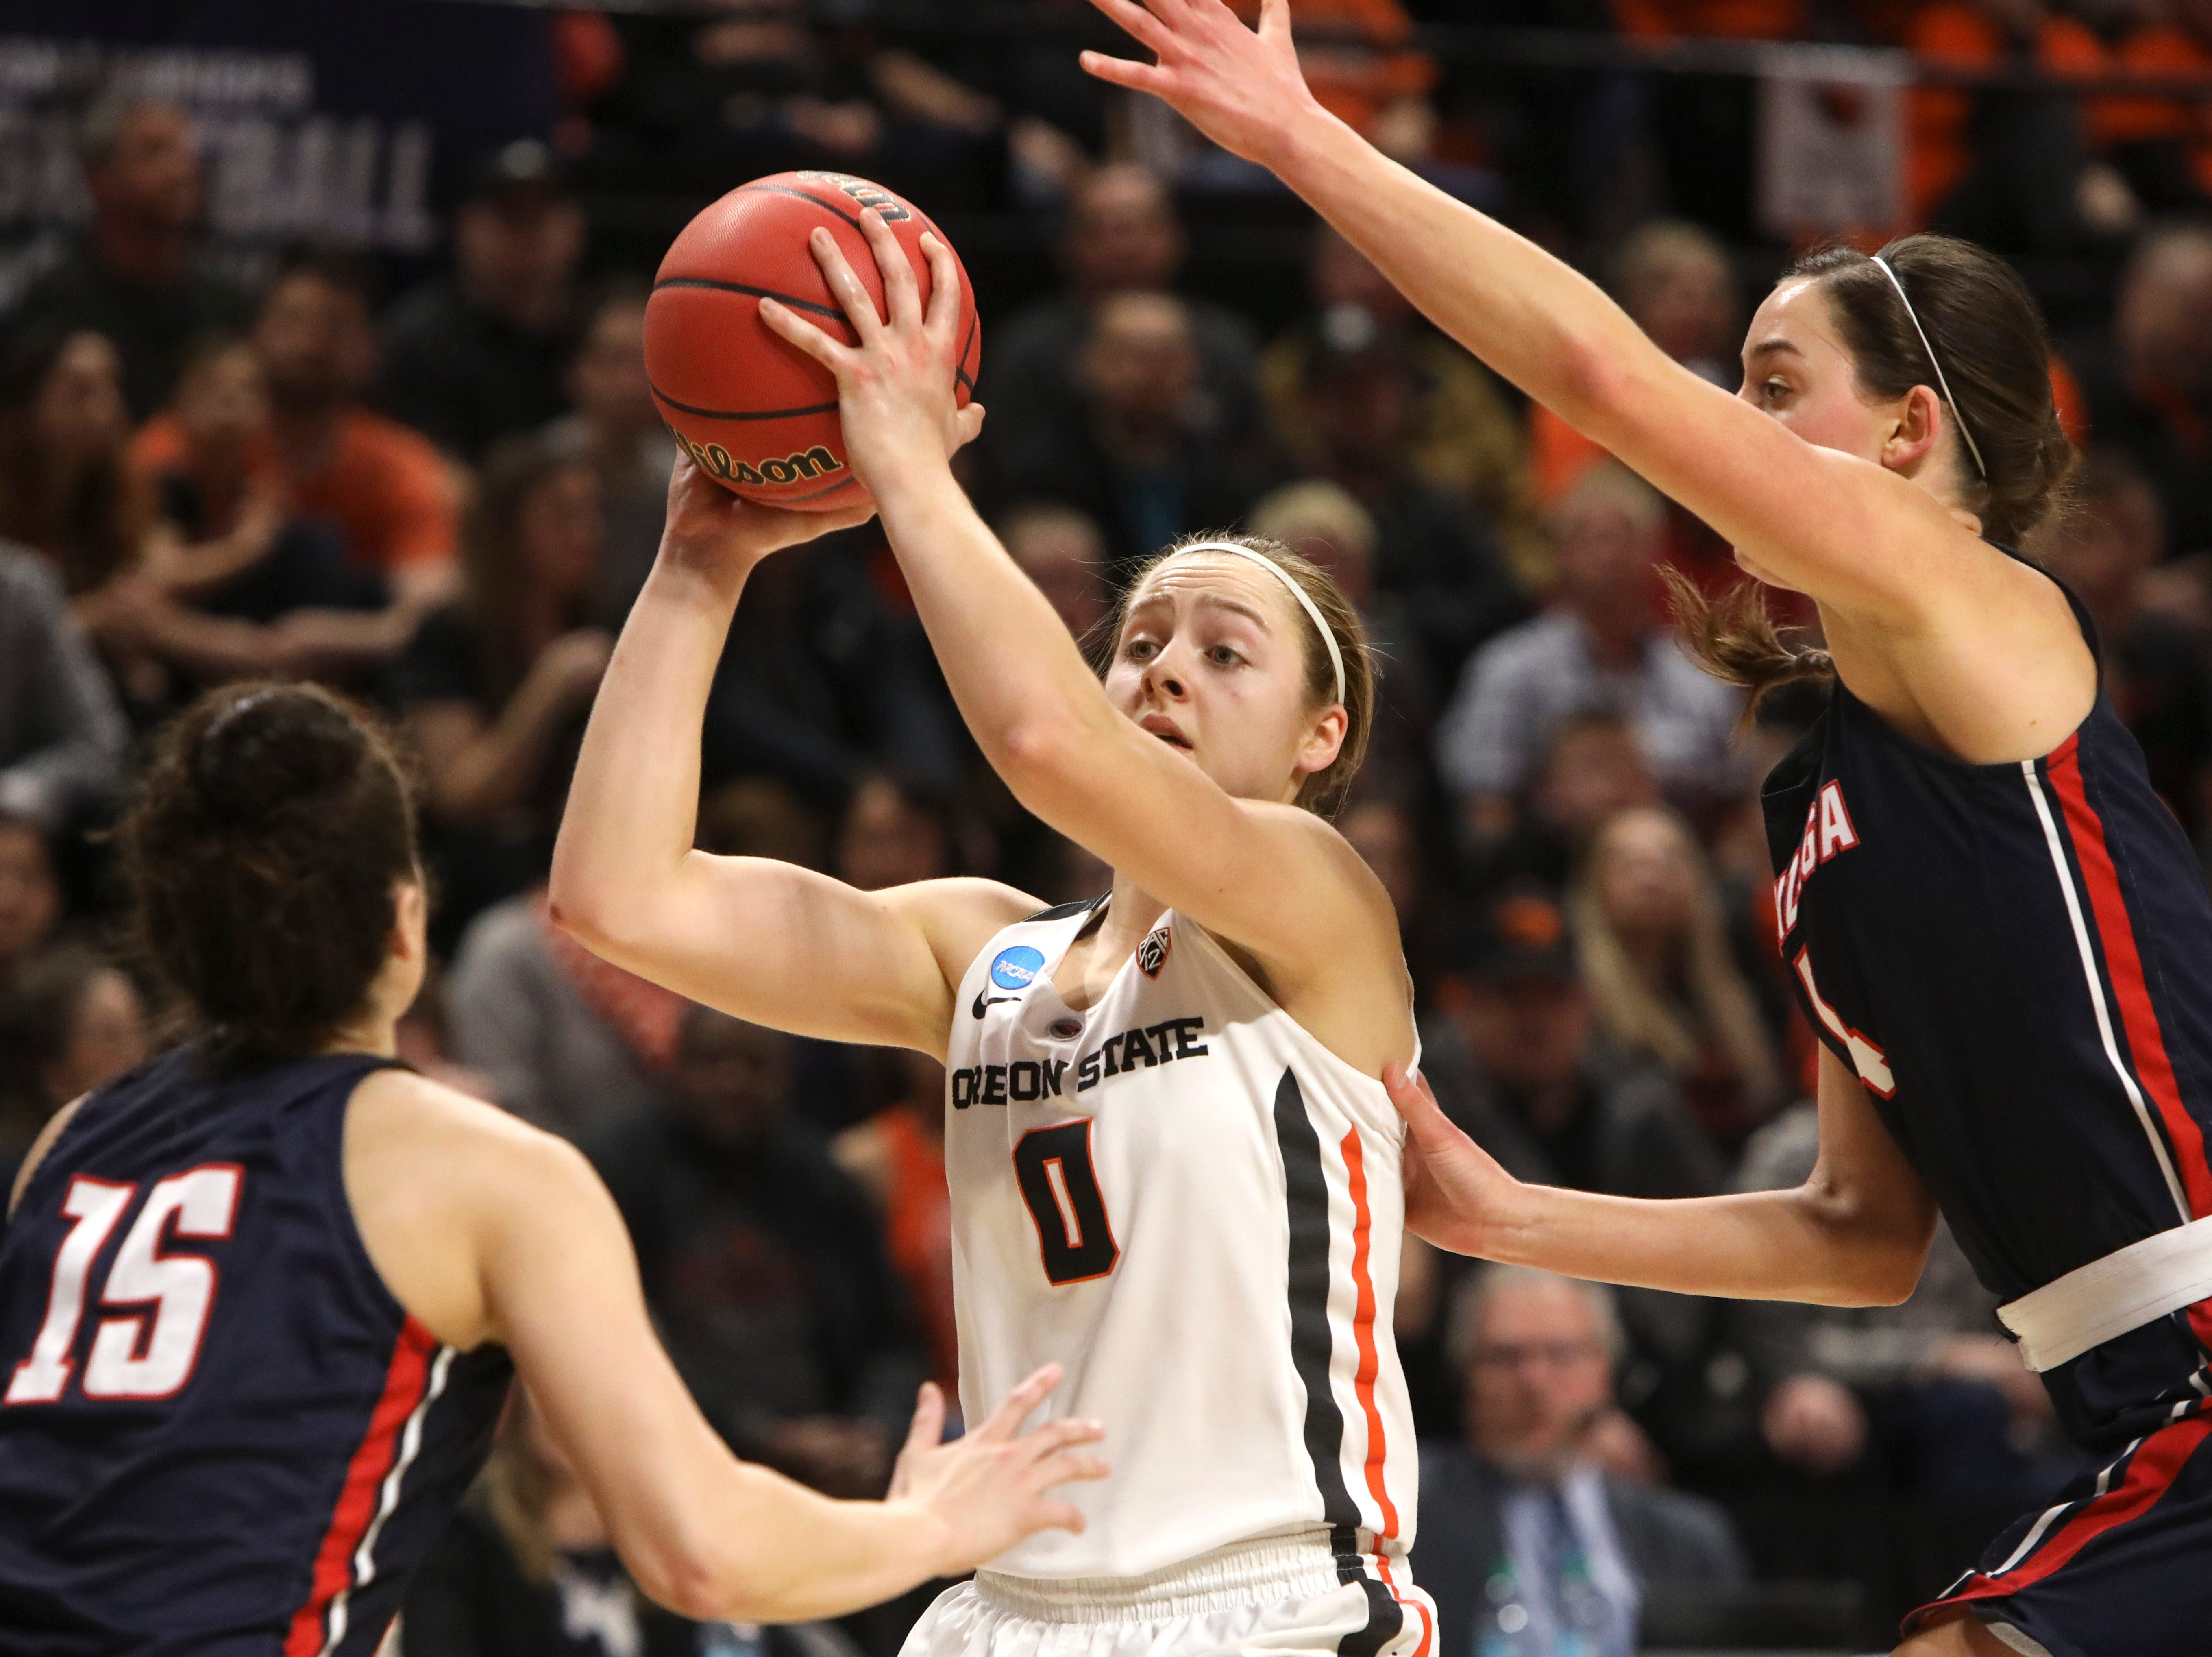 Oregon State's Mikayla Pivec (0) looks for a way through Gonzaga's Jessie Loera (15) and LeeAnne Wirth (4) during the first half of a second-round game of the NCAA women's college basketball tournament in Corvallis, Ore., Monday, March 25, 2019. (AP Photo/Amanda Loman)